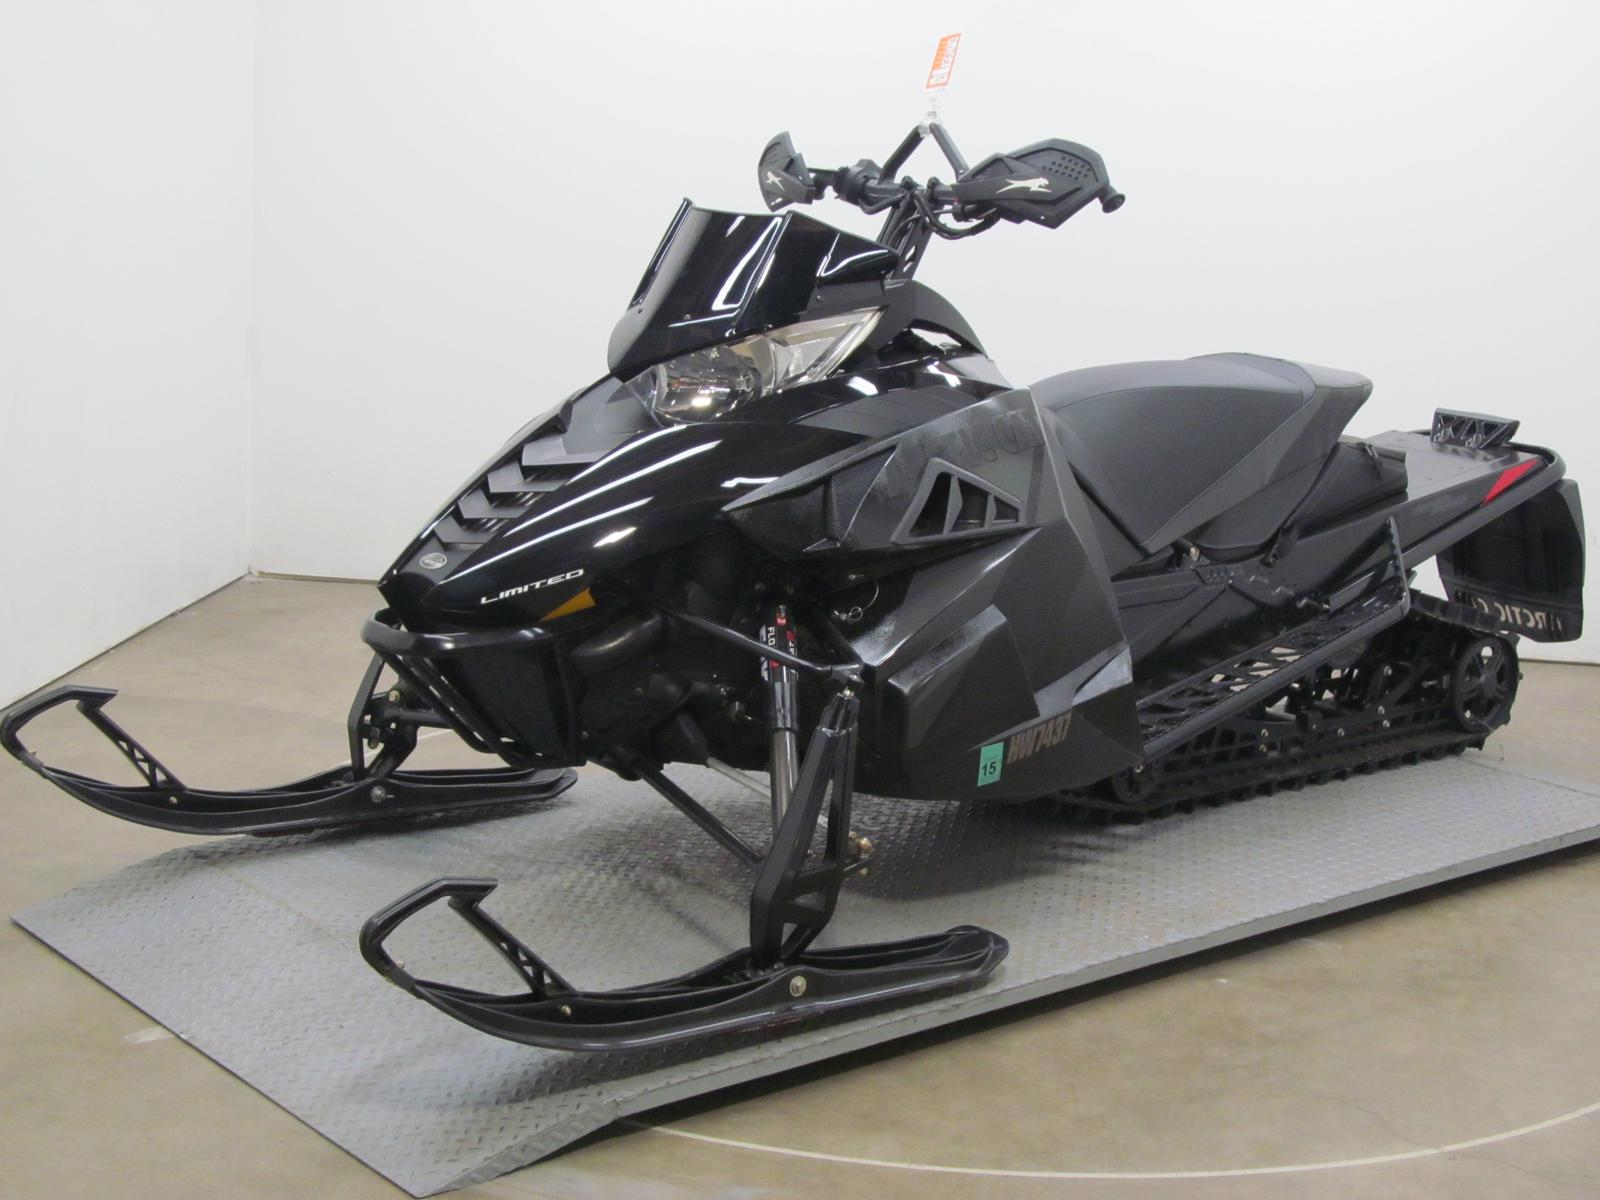 2013 Arctic Cat XF 1100 SP for sale in Baxter MN